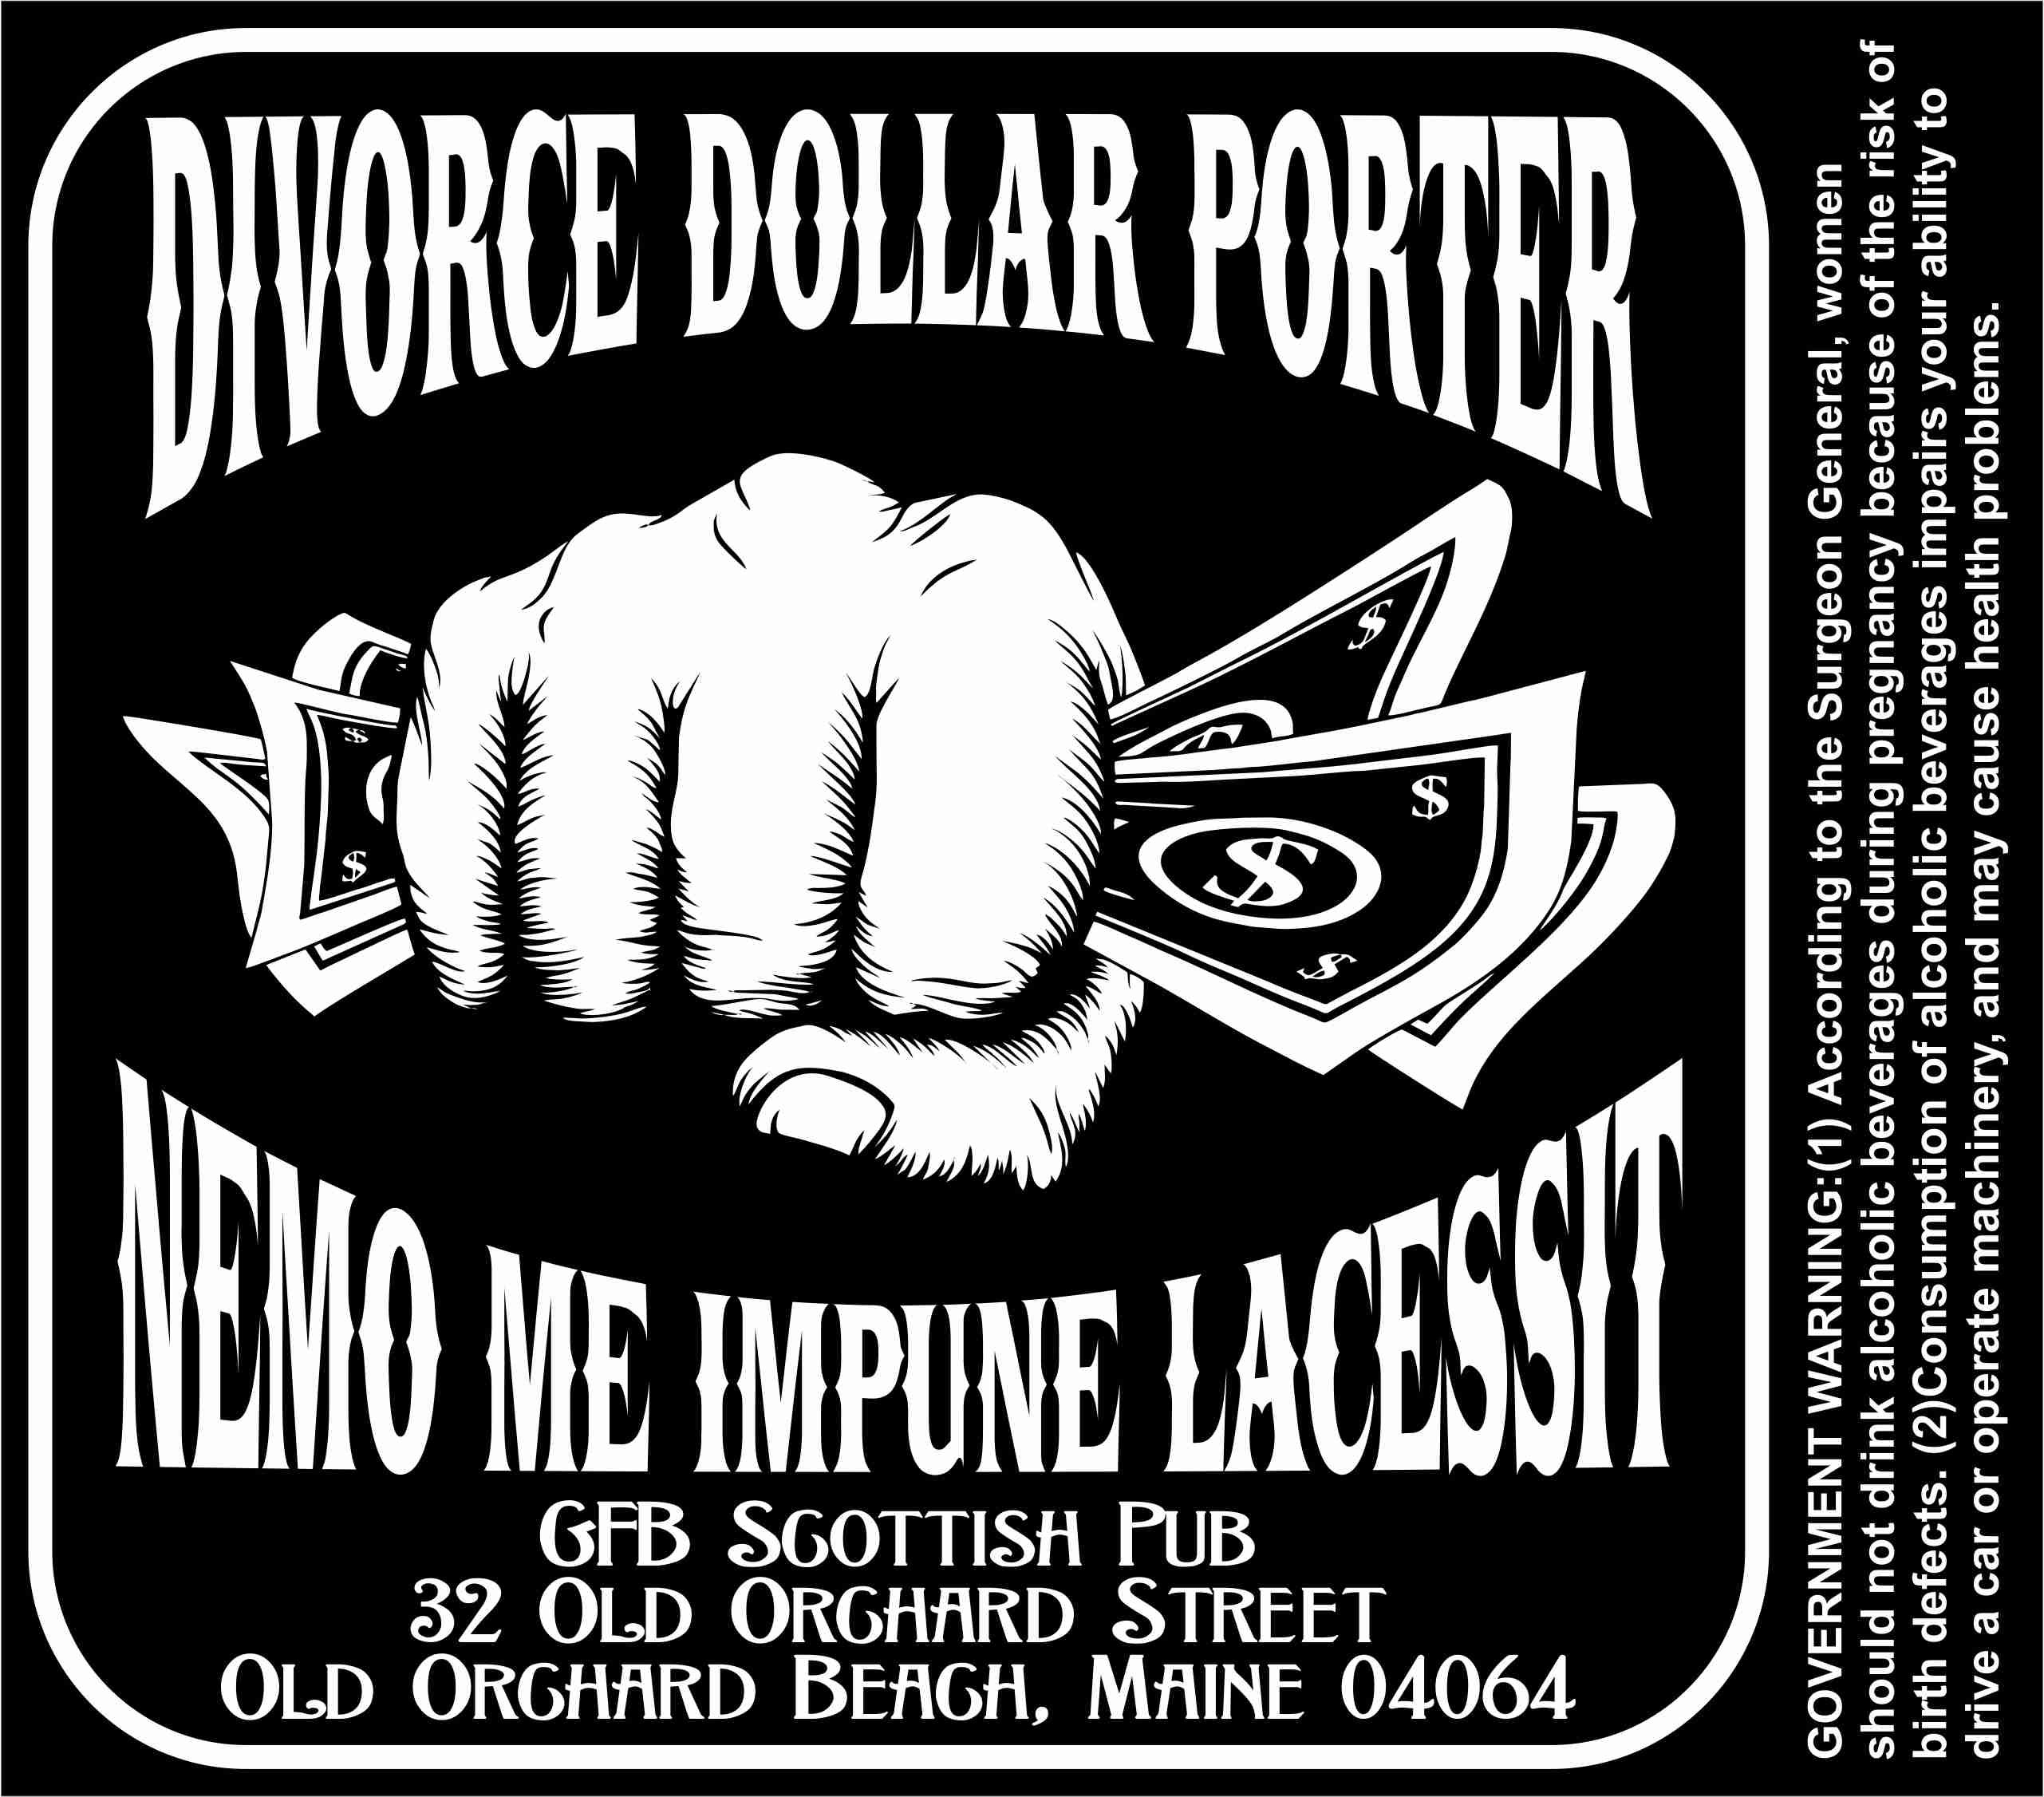 GFB Divorce Dollar Porter